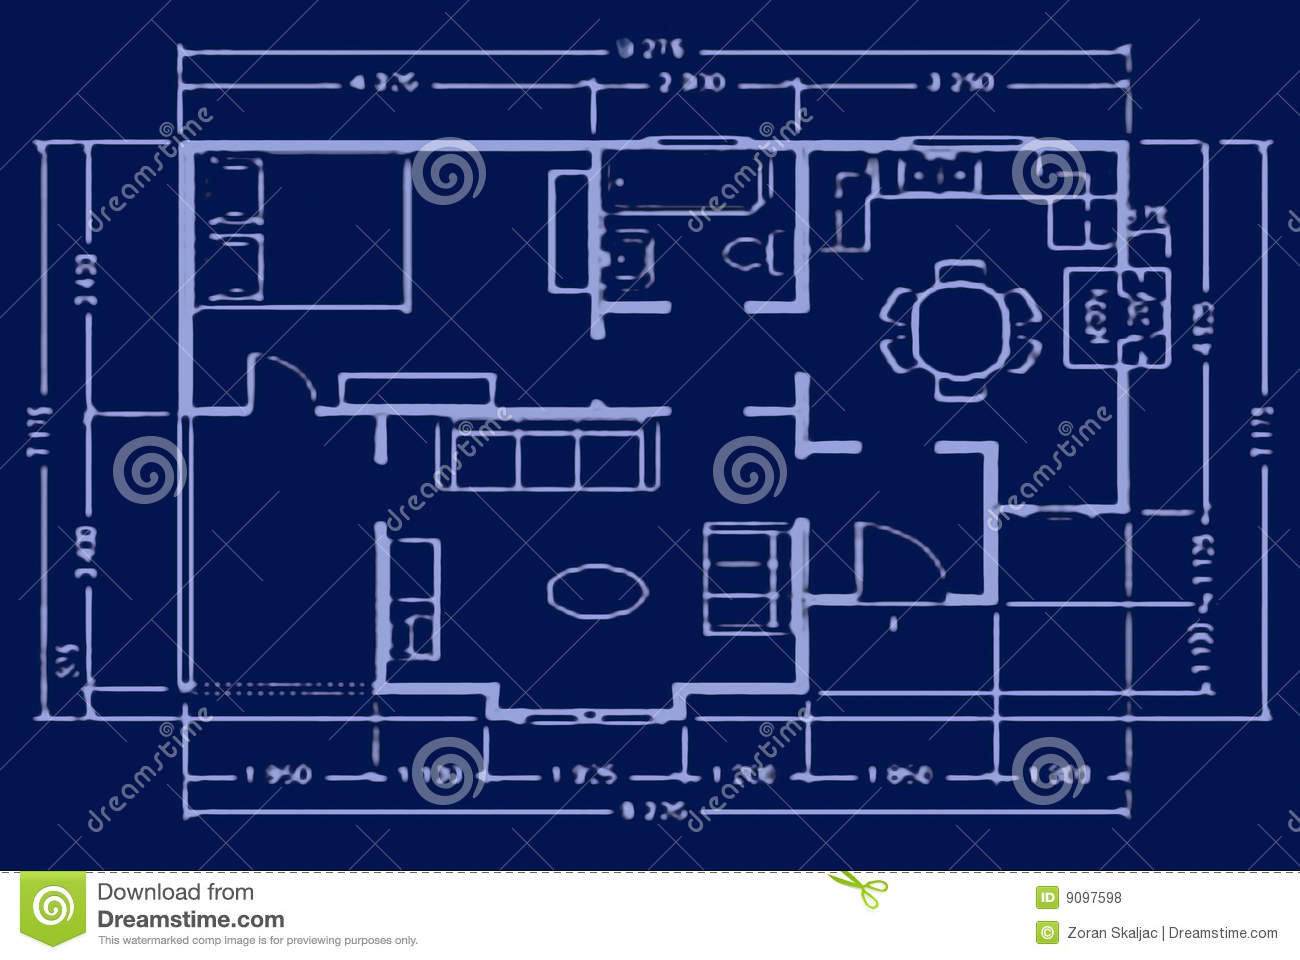 Astounding Blue Prints House Blueprint House Plan Royalty Free Stock Photos Largest Home Design Picture Inspirations Pitcheantrous